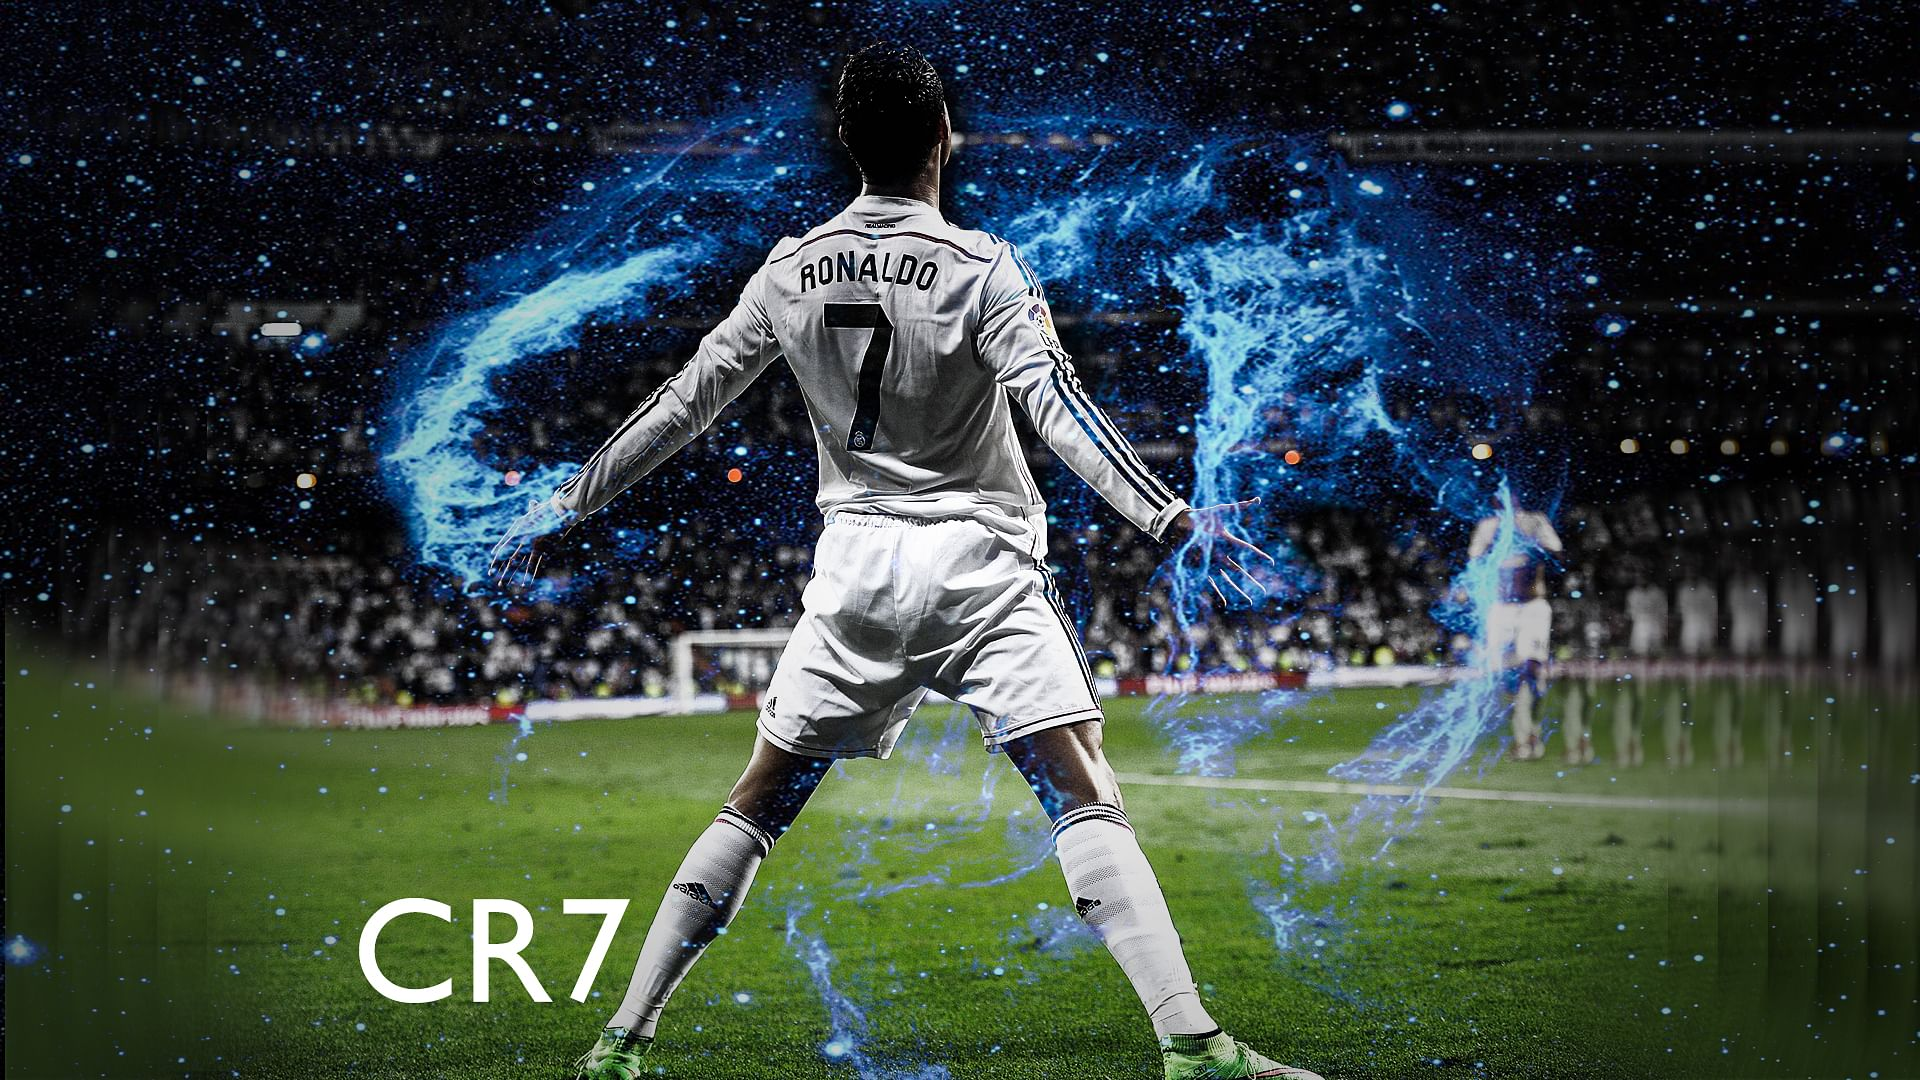 Free Soccer Wallpaper: Cristiano Ronaldo HD Wallpapers